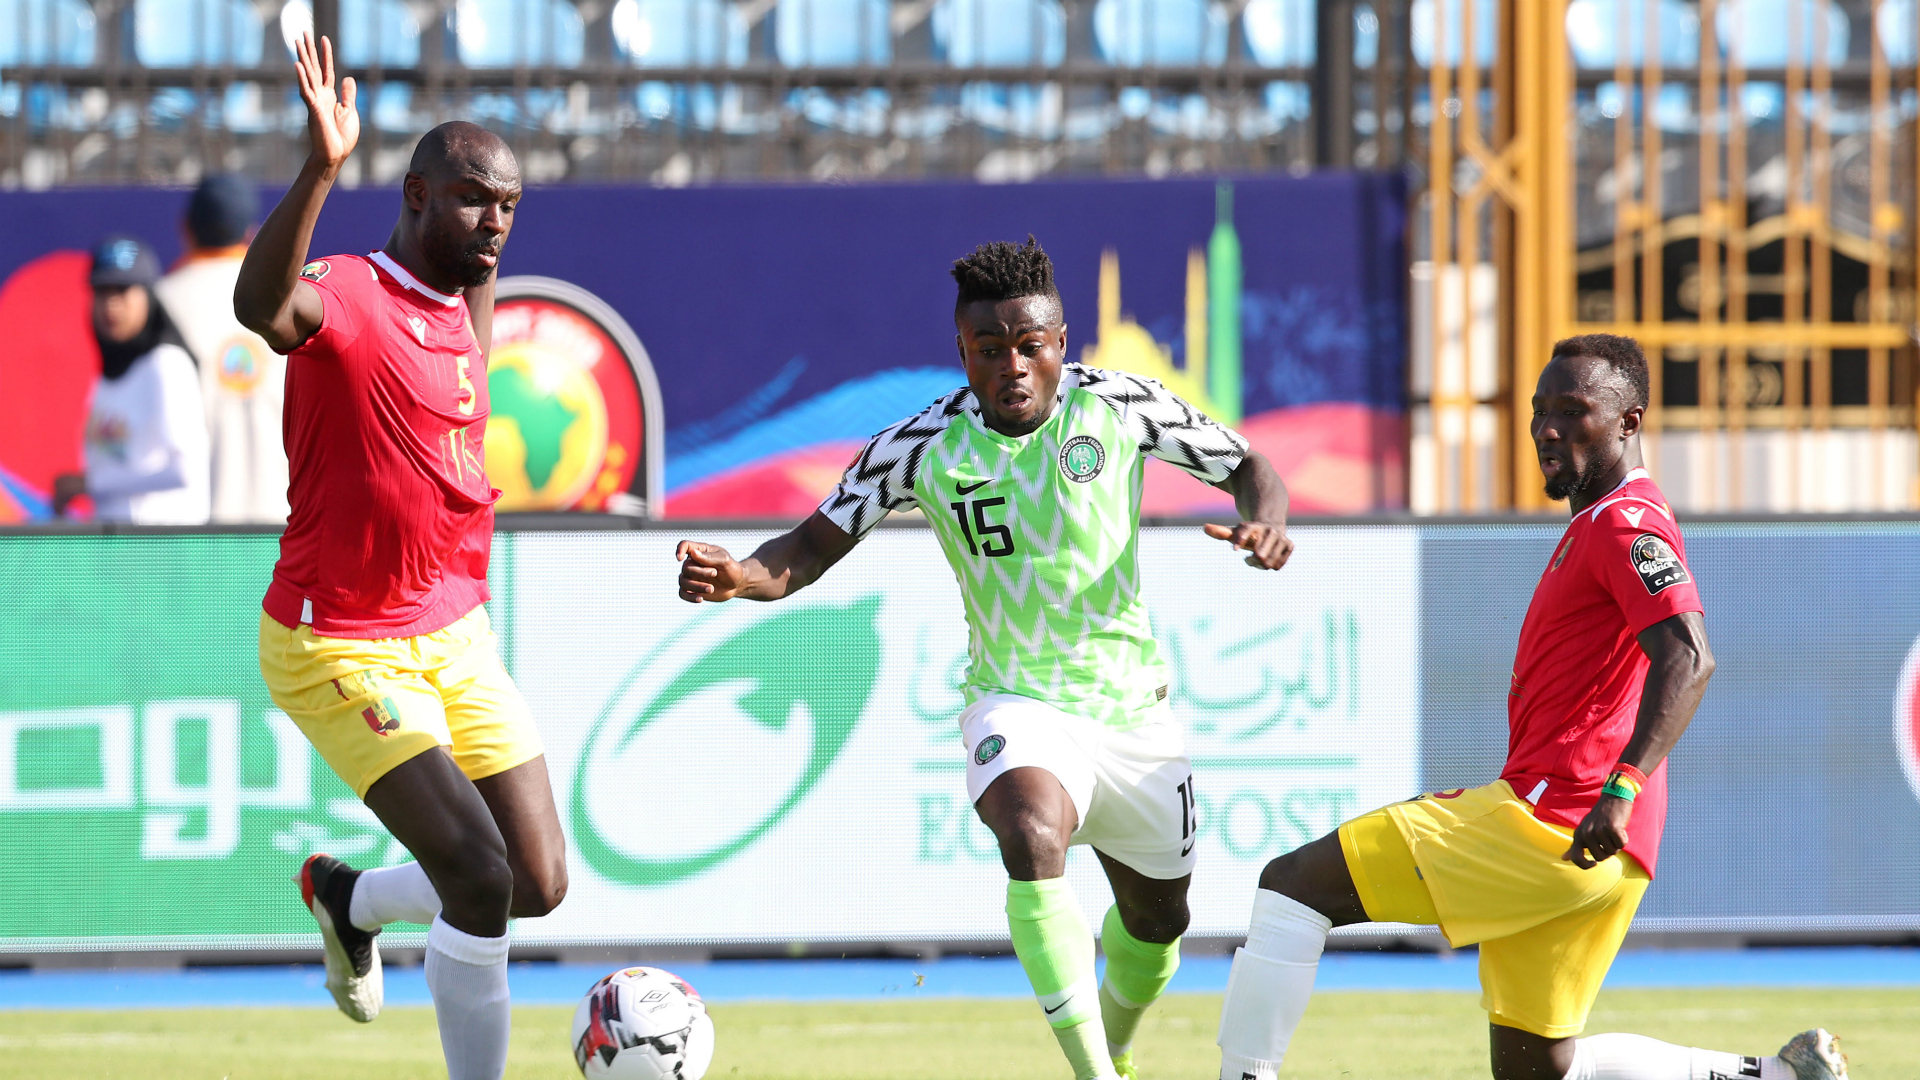 Moses Simon & Henry Onyekuru: Mixed fortunes for Nigeria wingers in France so far